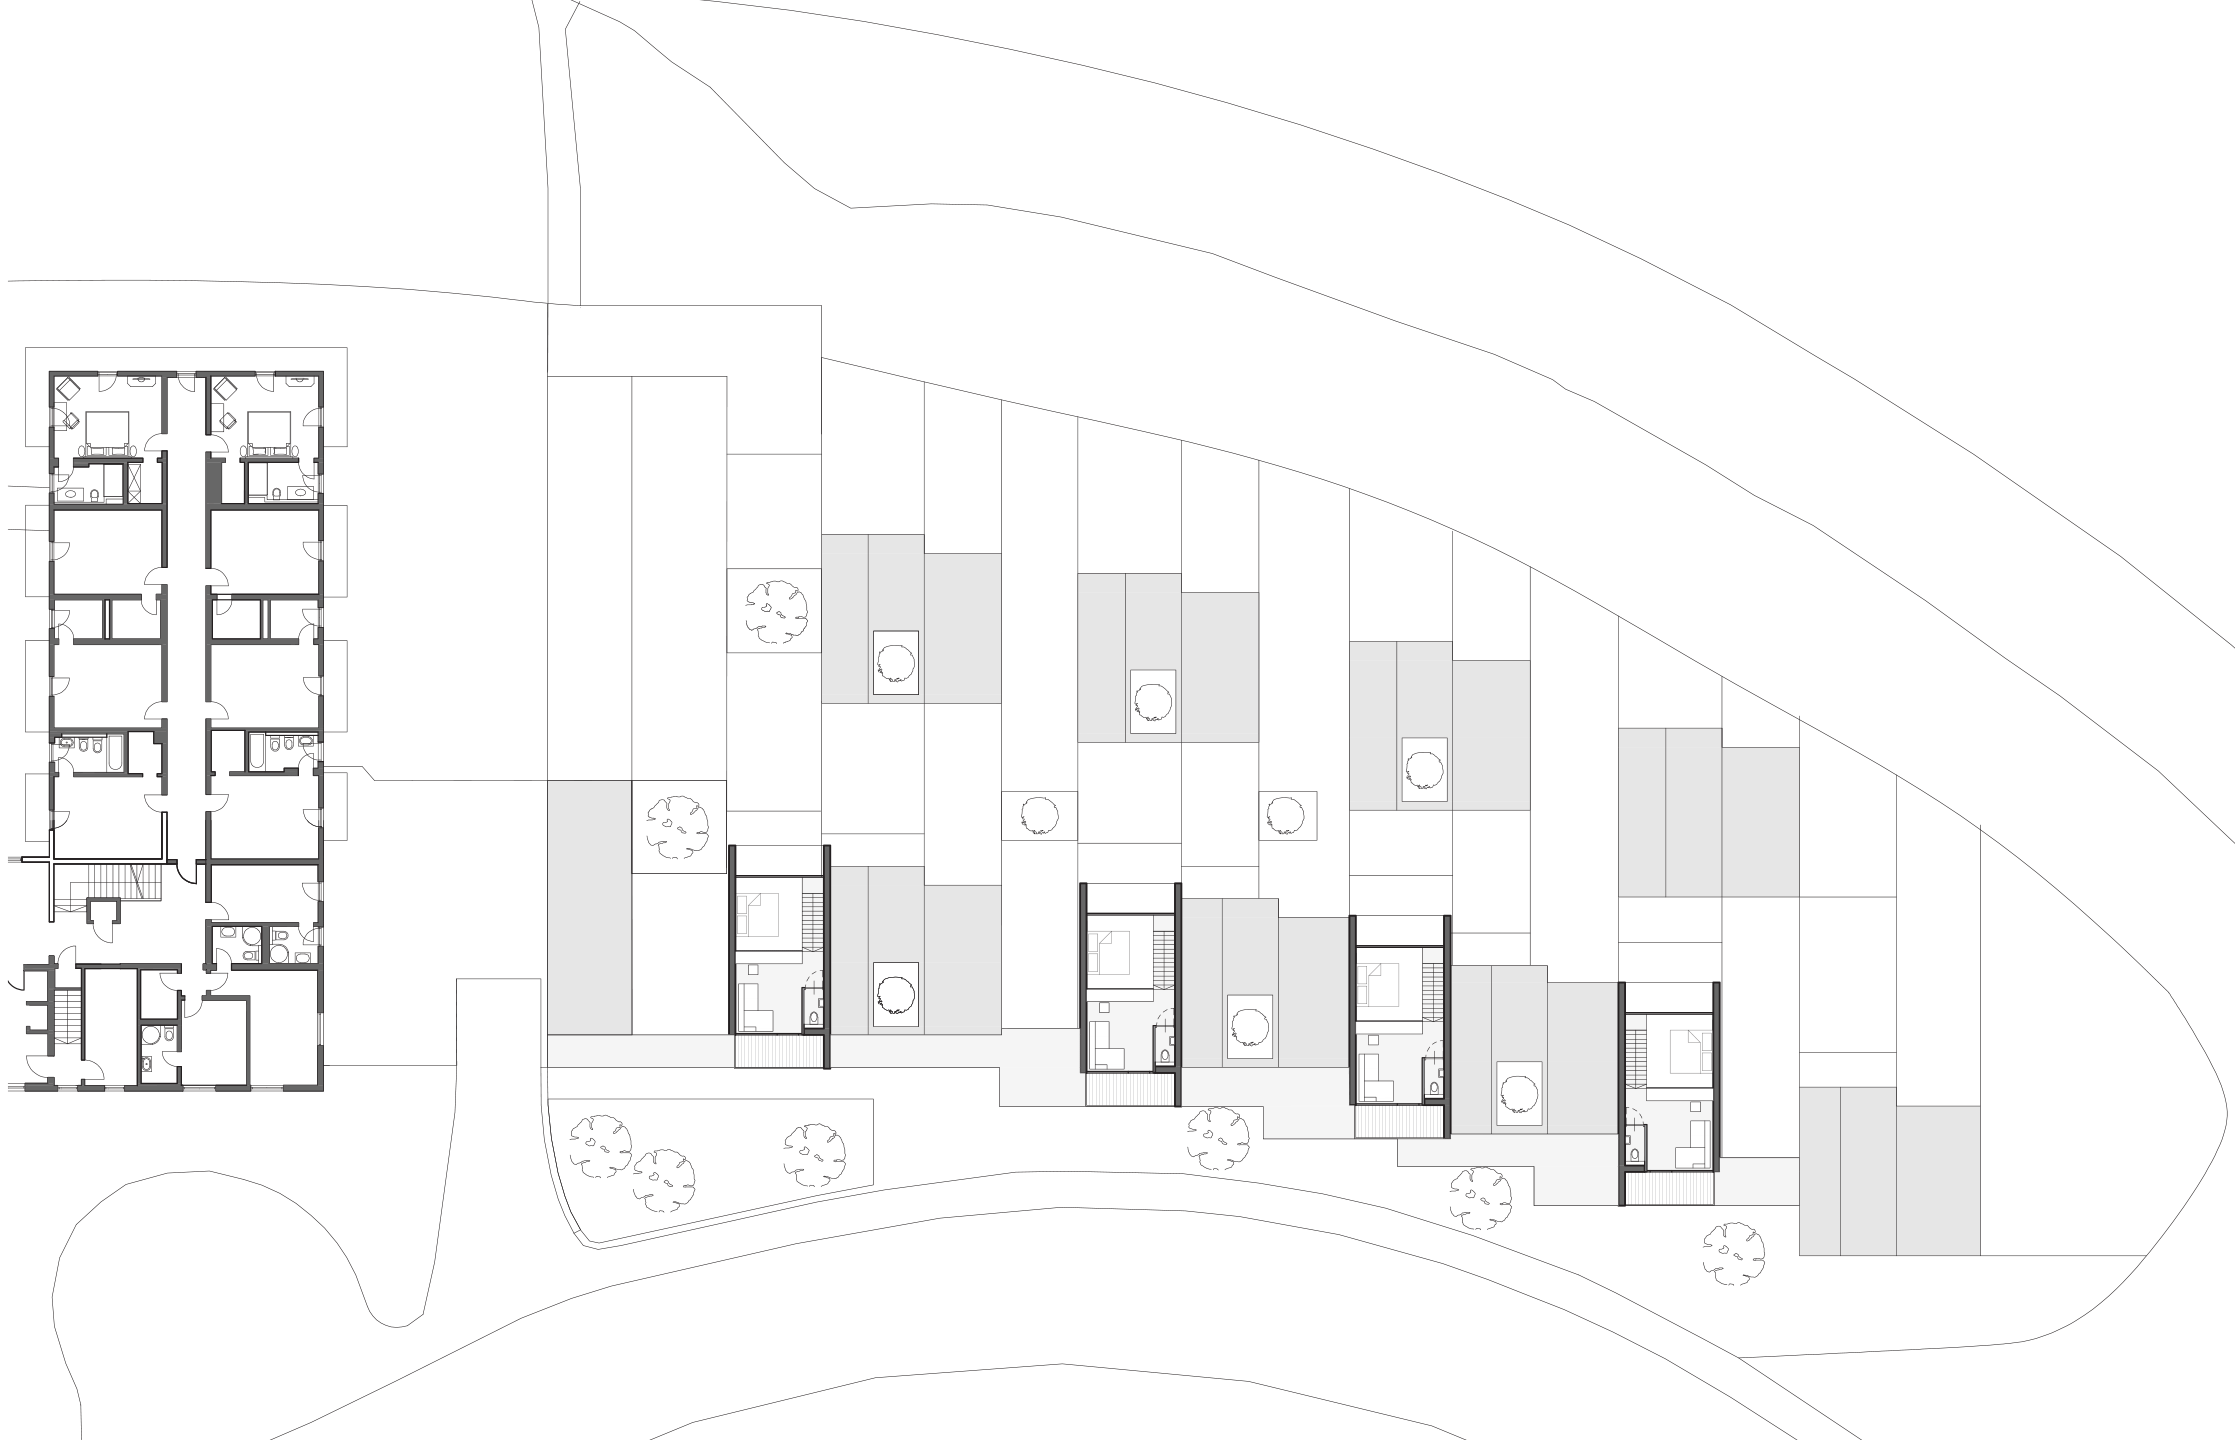 Floor Plans FR Mayr Smartvoll